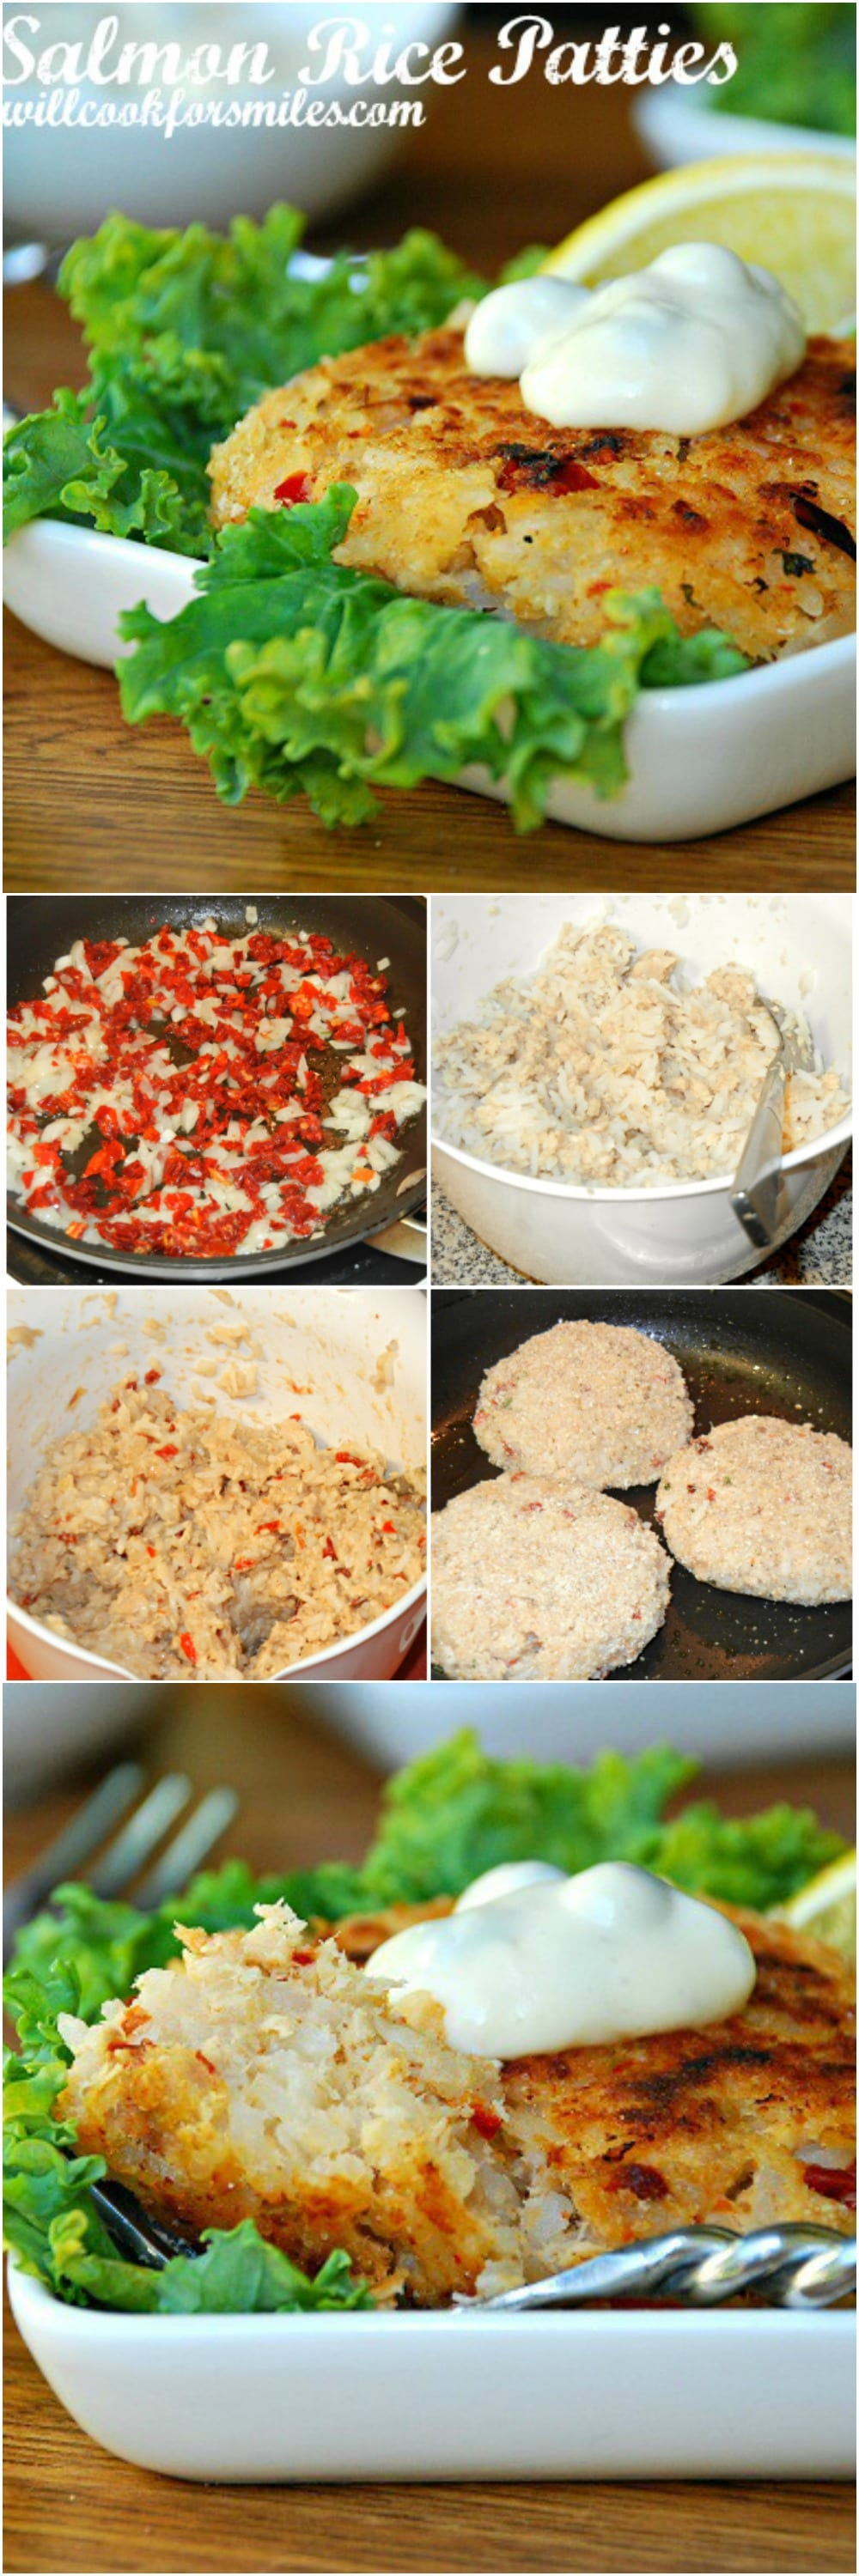 Tasty salmon rice patties easily made with salmon, rice, and sun dried tomatoes. These salmon cakes are served with homemade sauce.